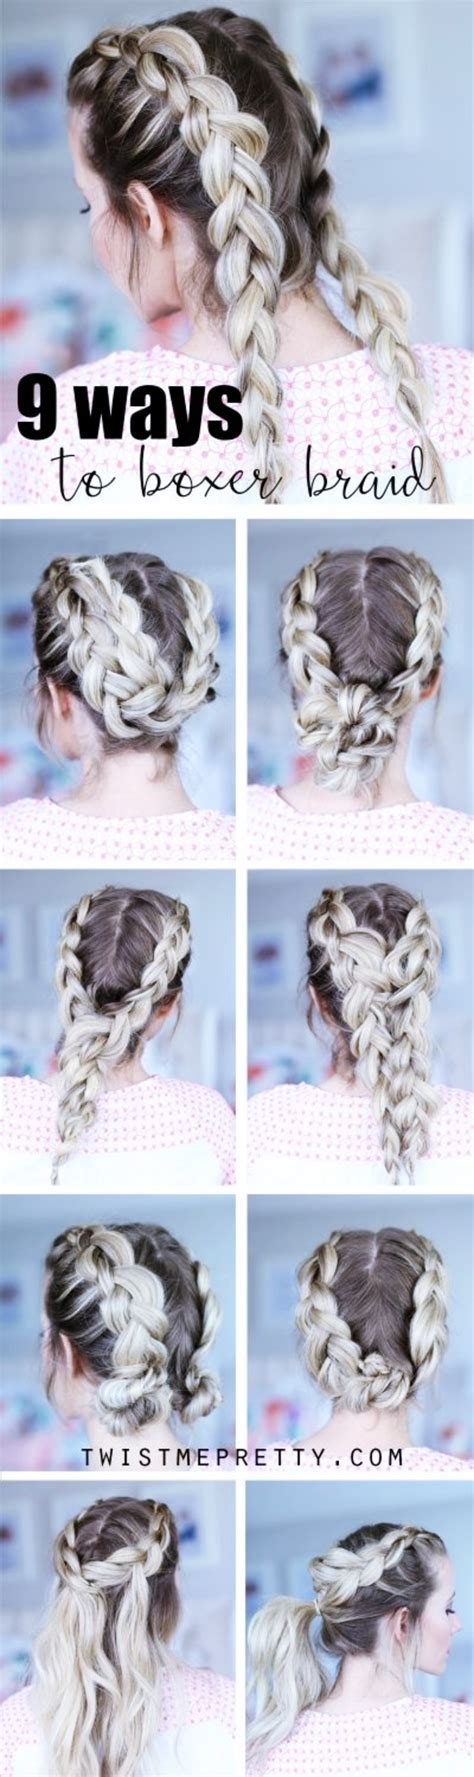 25 absolutely new and easy hairstyles to try in 2018 25 absolutely new and easy hairstyles to try in 2018